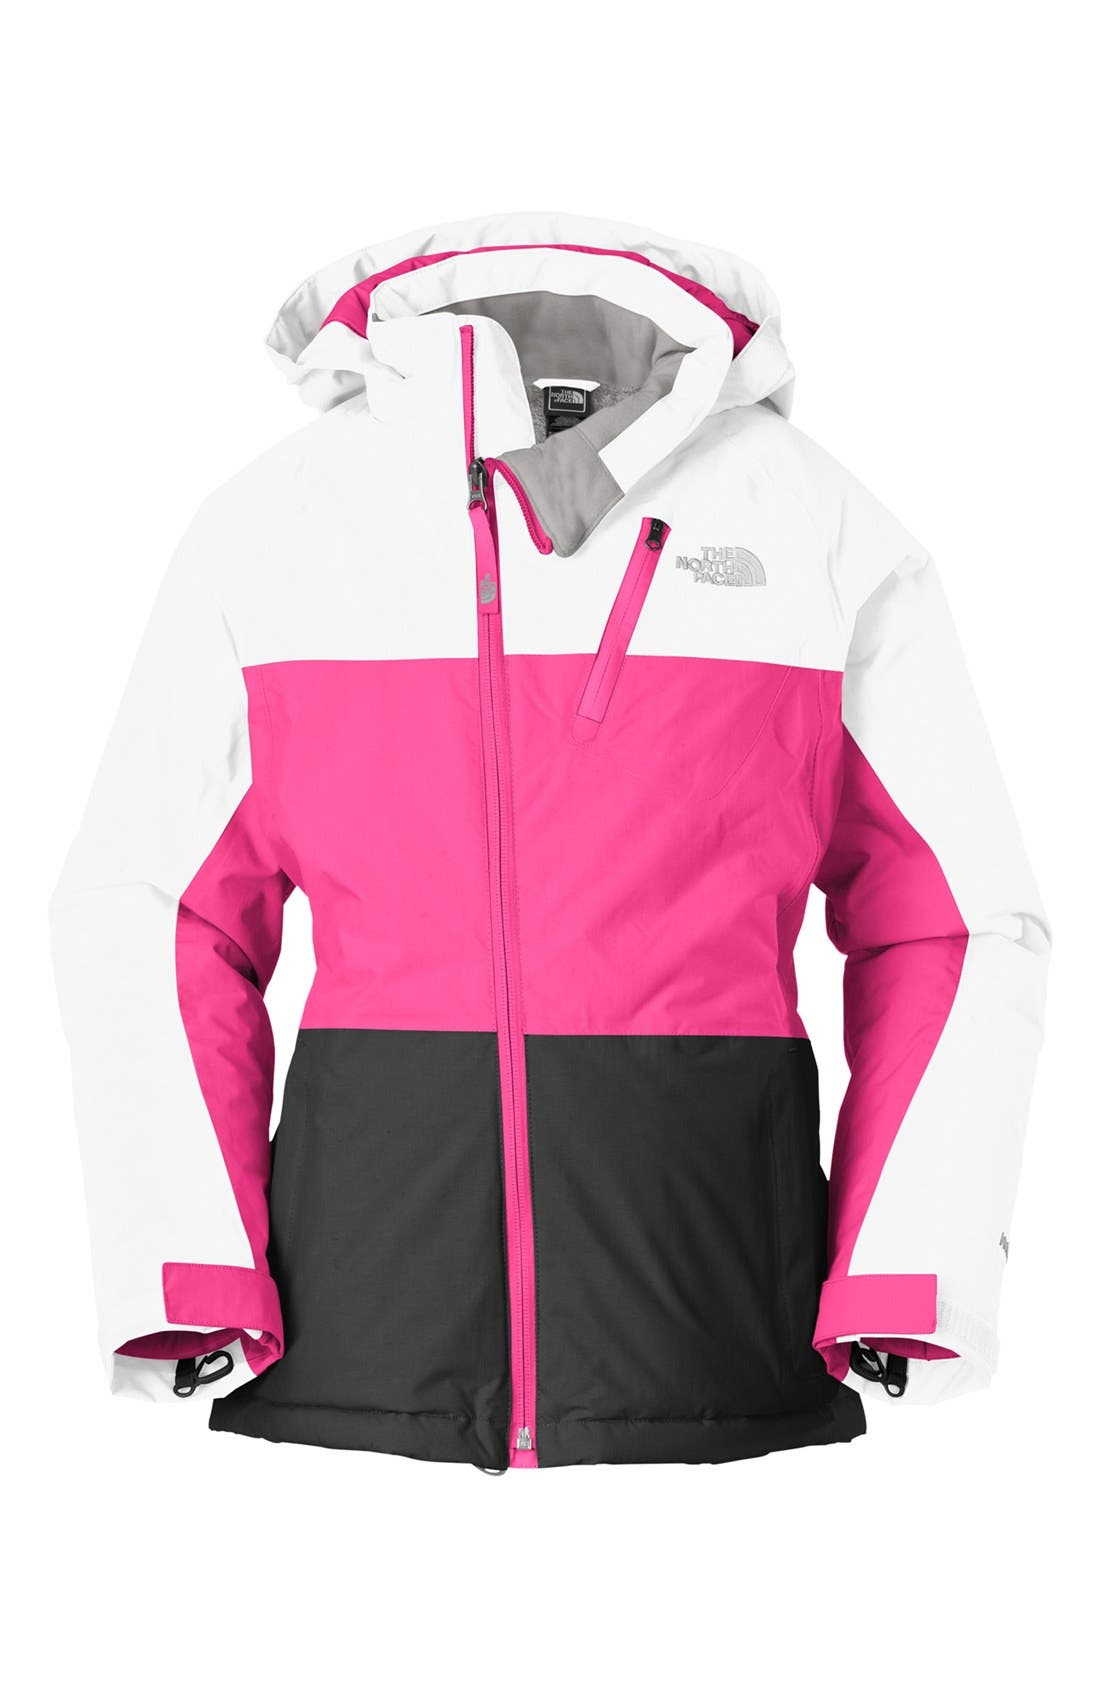 Alternate Image 1 Selected - The North Face 'Kizamm' Insulated Jacket (Little Girls & Big Girls)